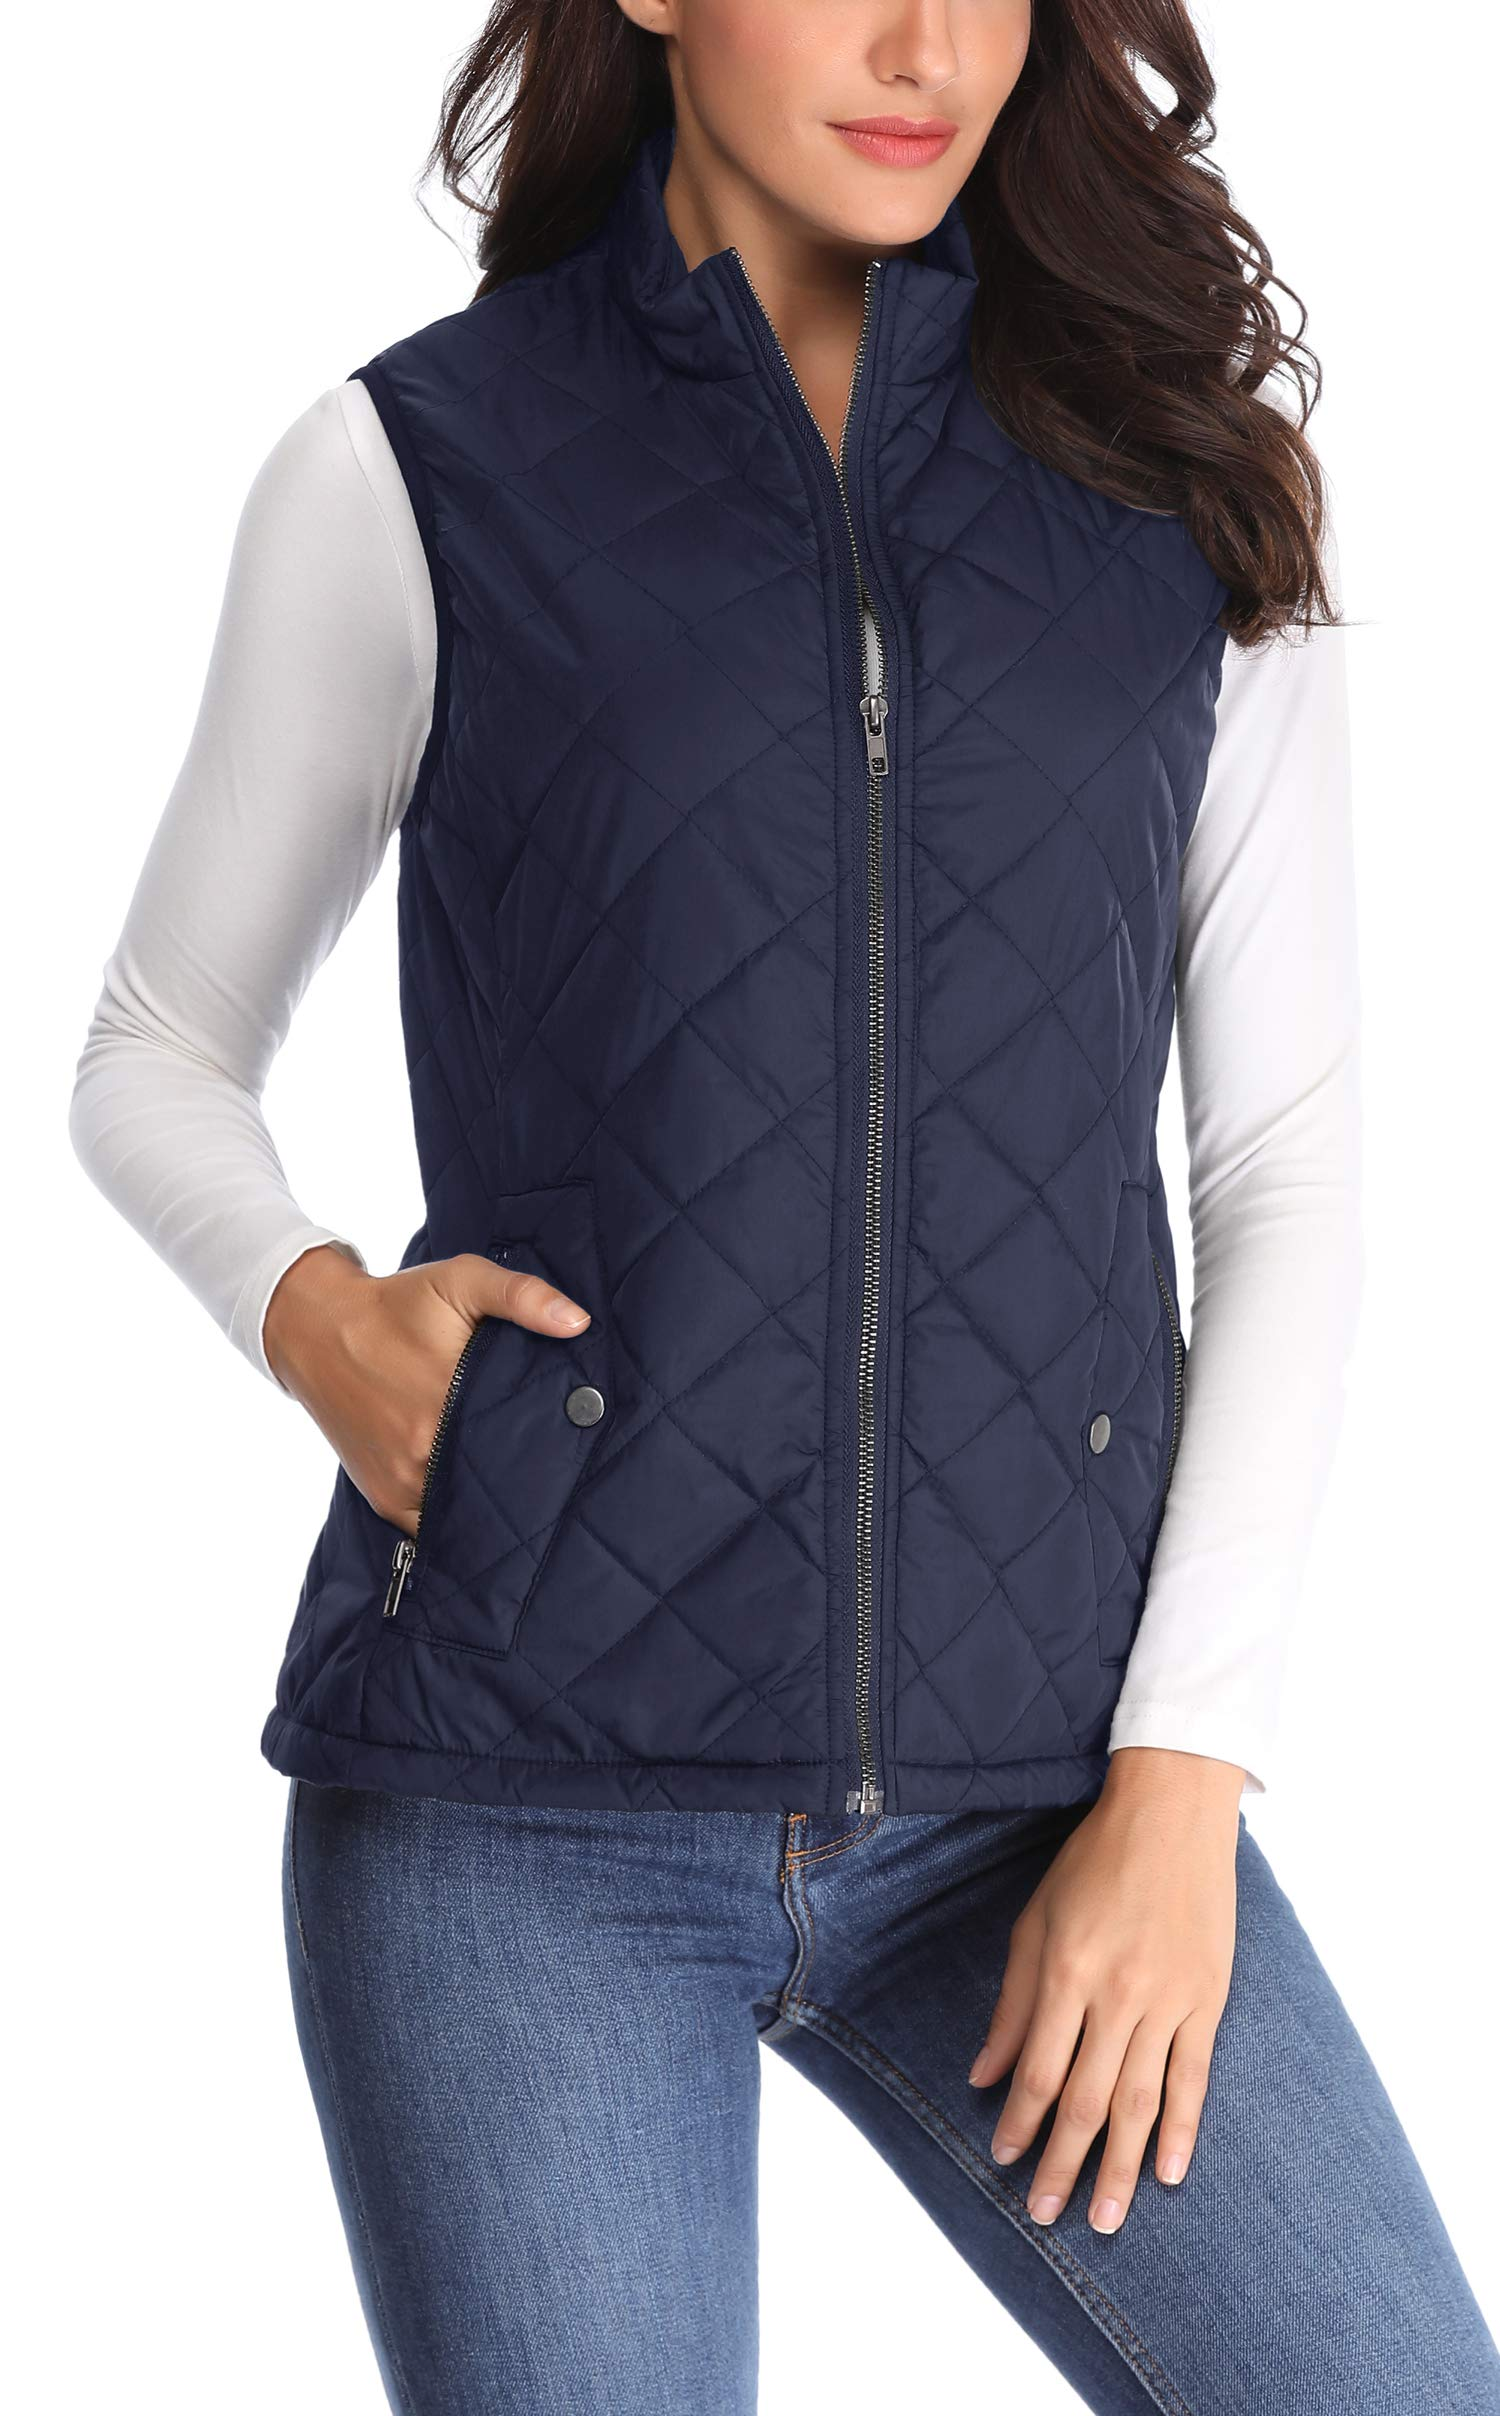 MISS MOLY Women Lightweight Quilted Padded Vest Stand Collar Zip Up Front Gilet Quilted, Blue, Medium